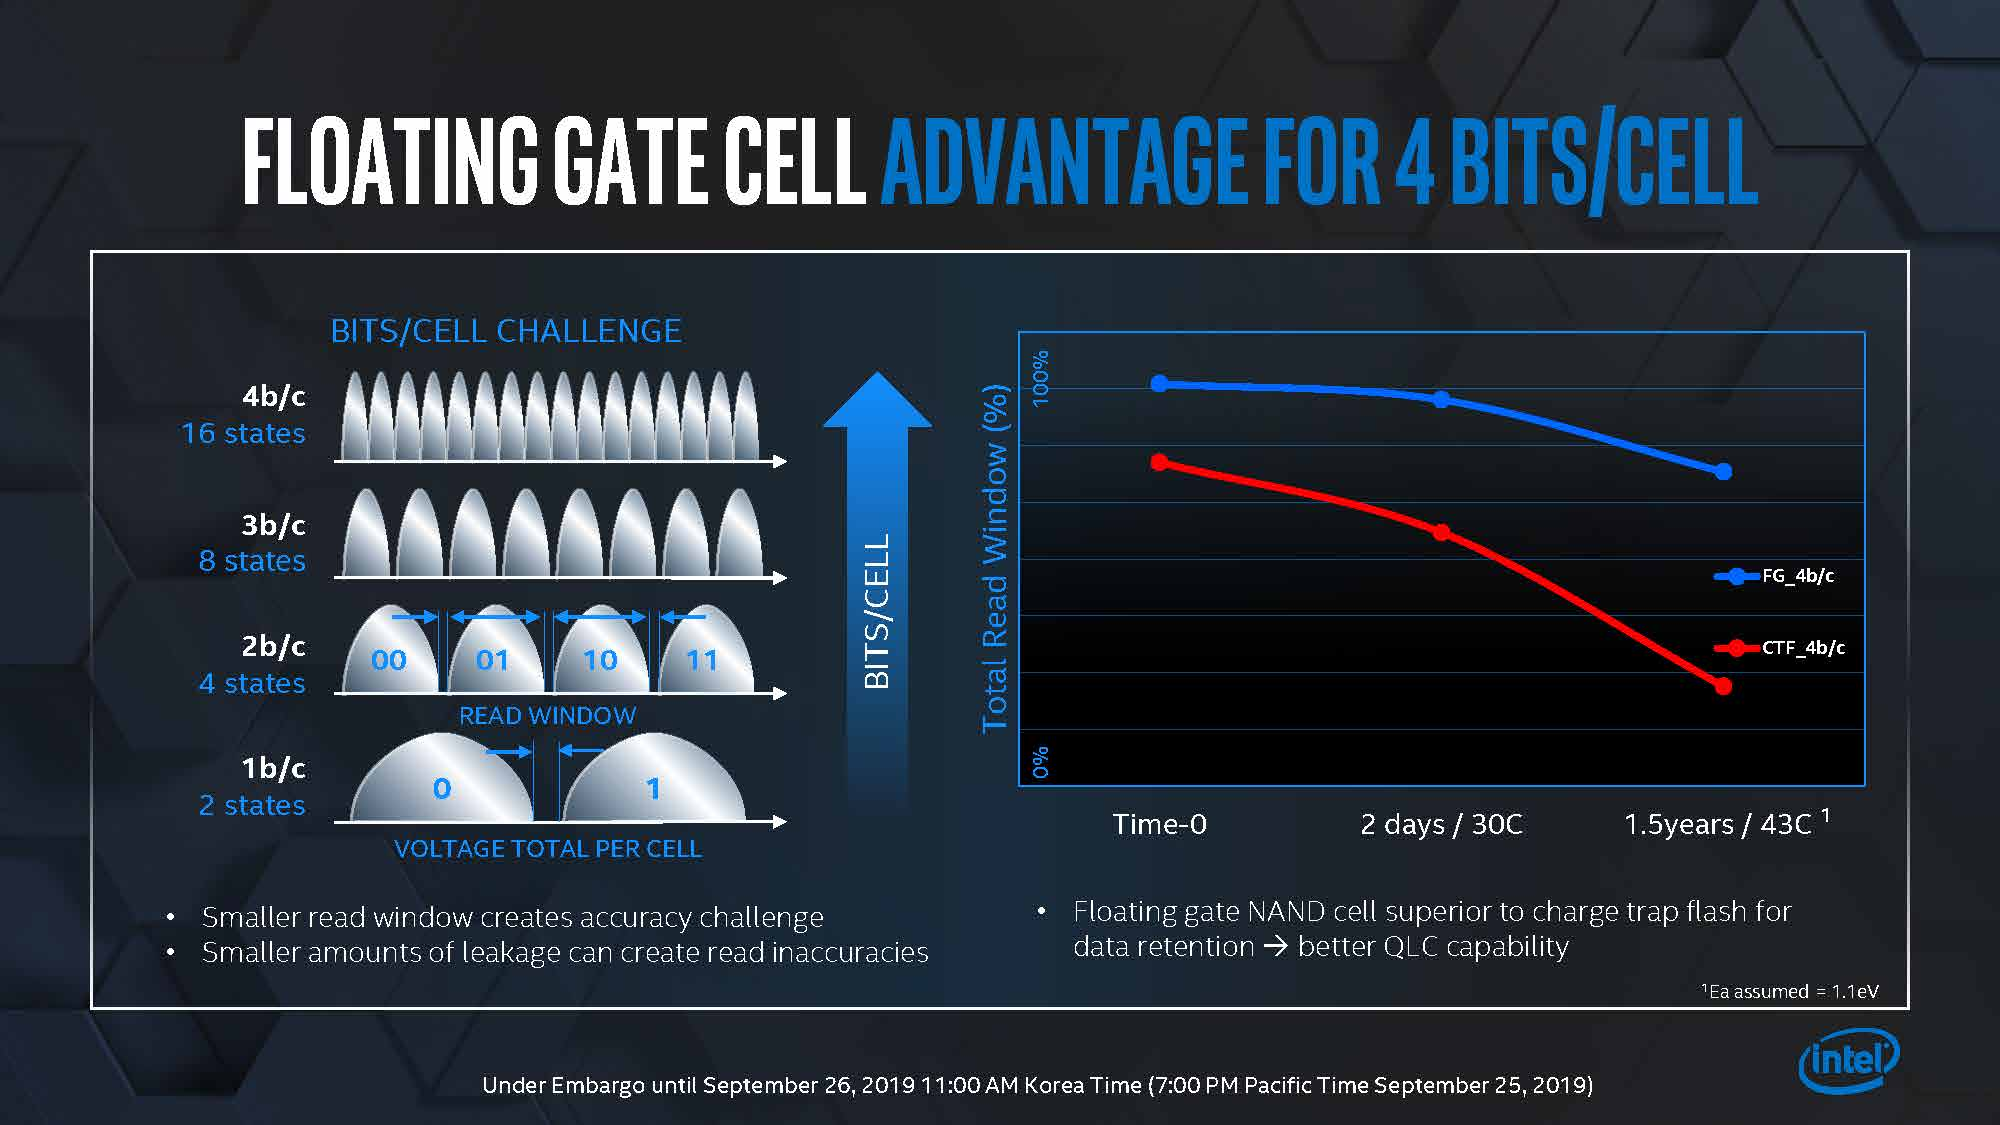 Intel Memory Storage Day 2019 Floating Gate Cell